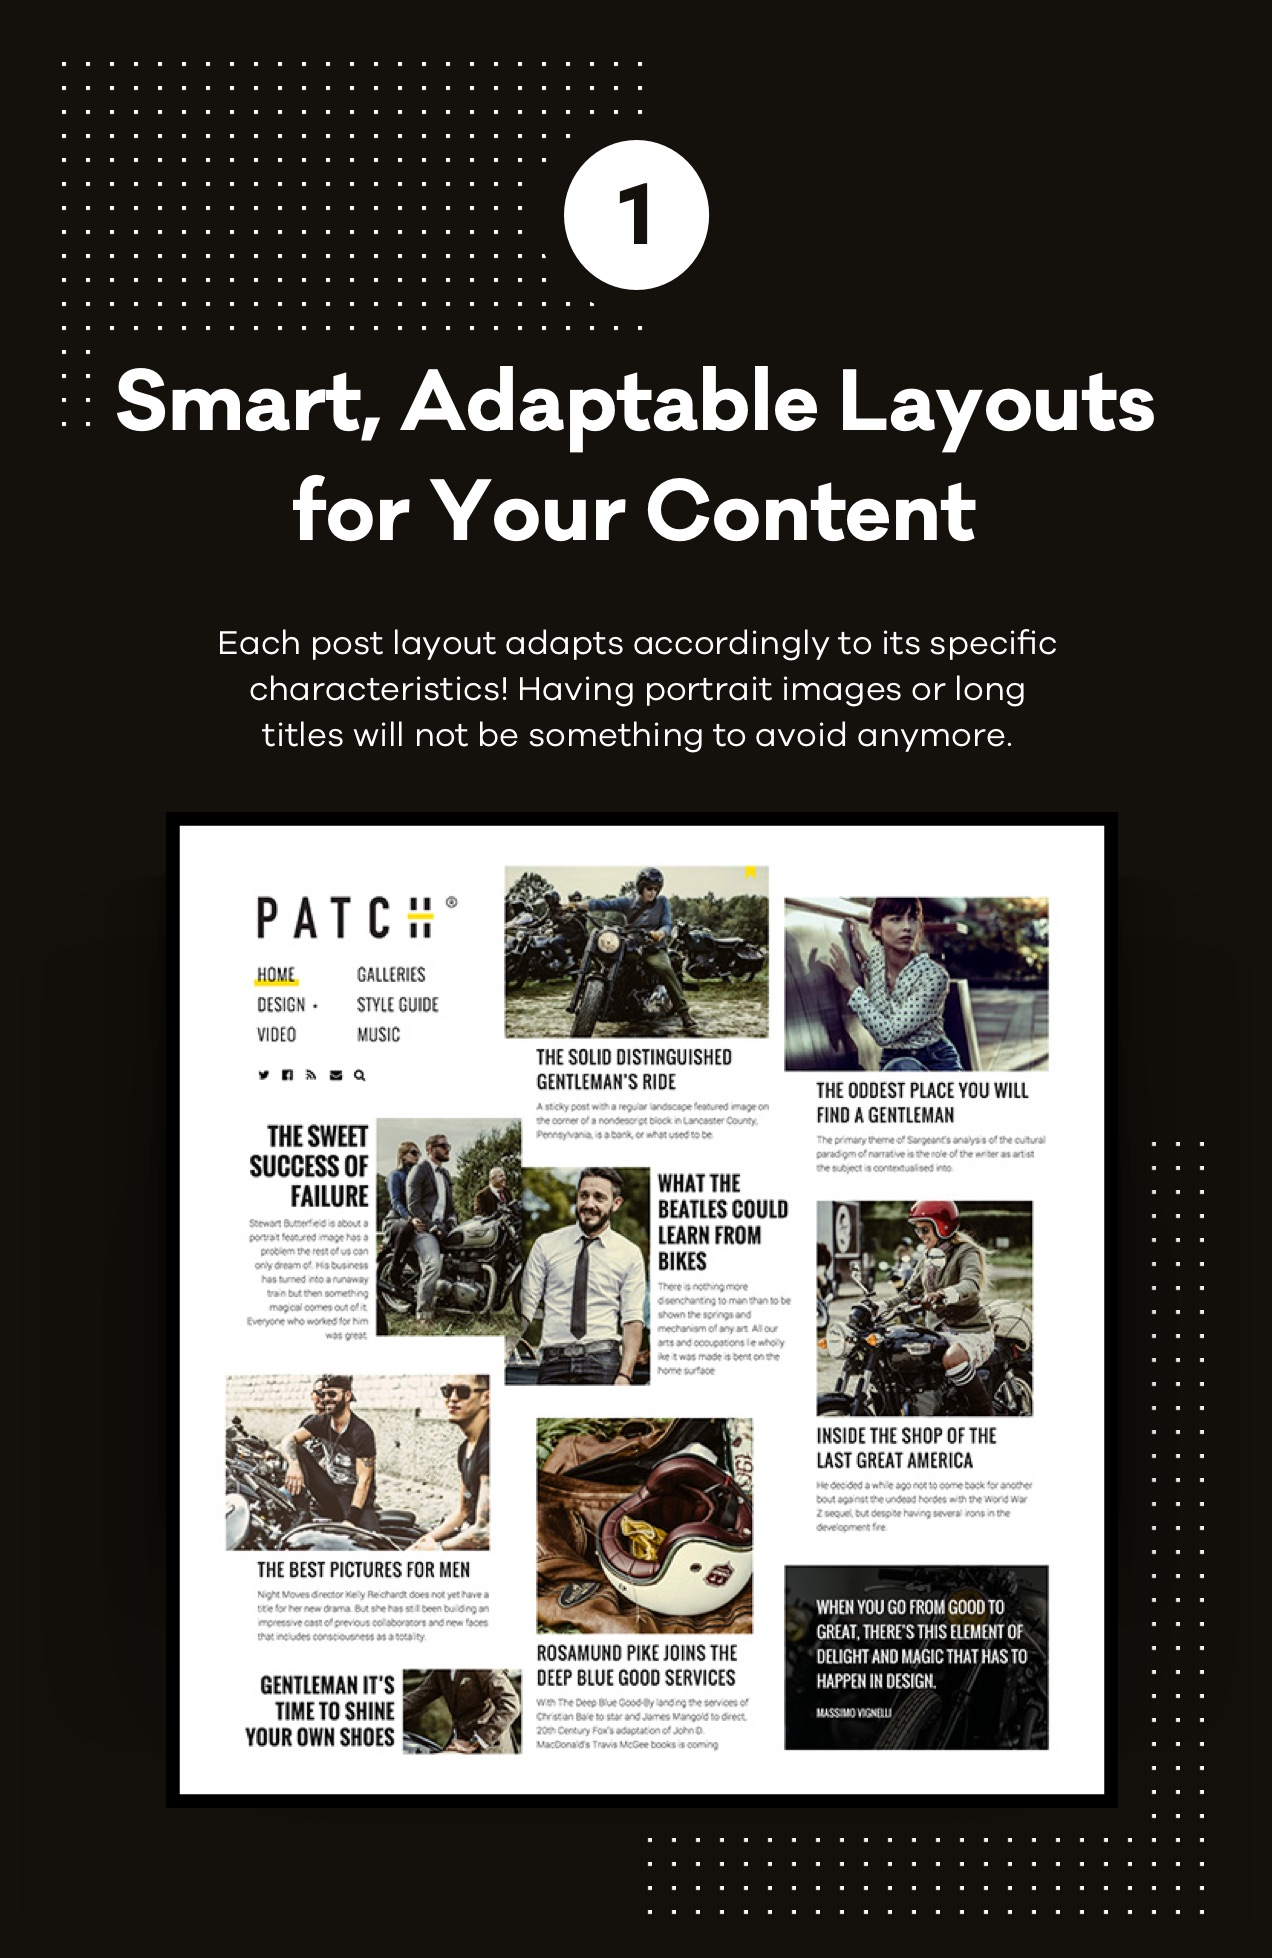 Smart, Adaptable Layouts for Your Content